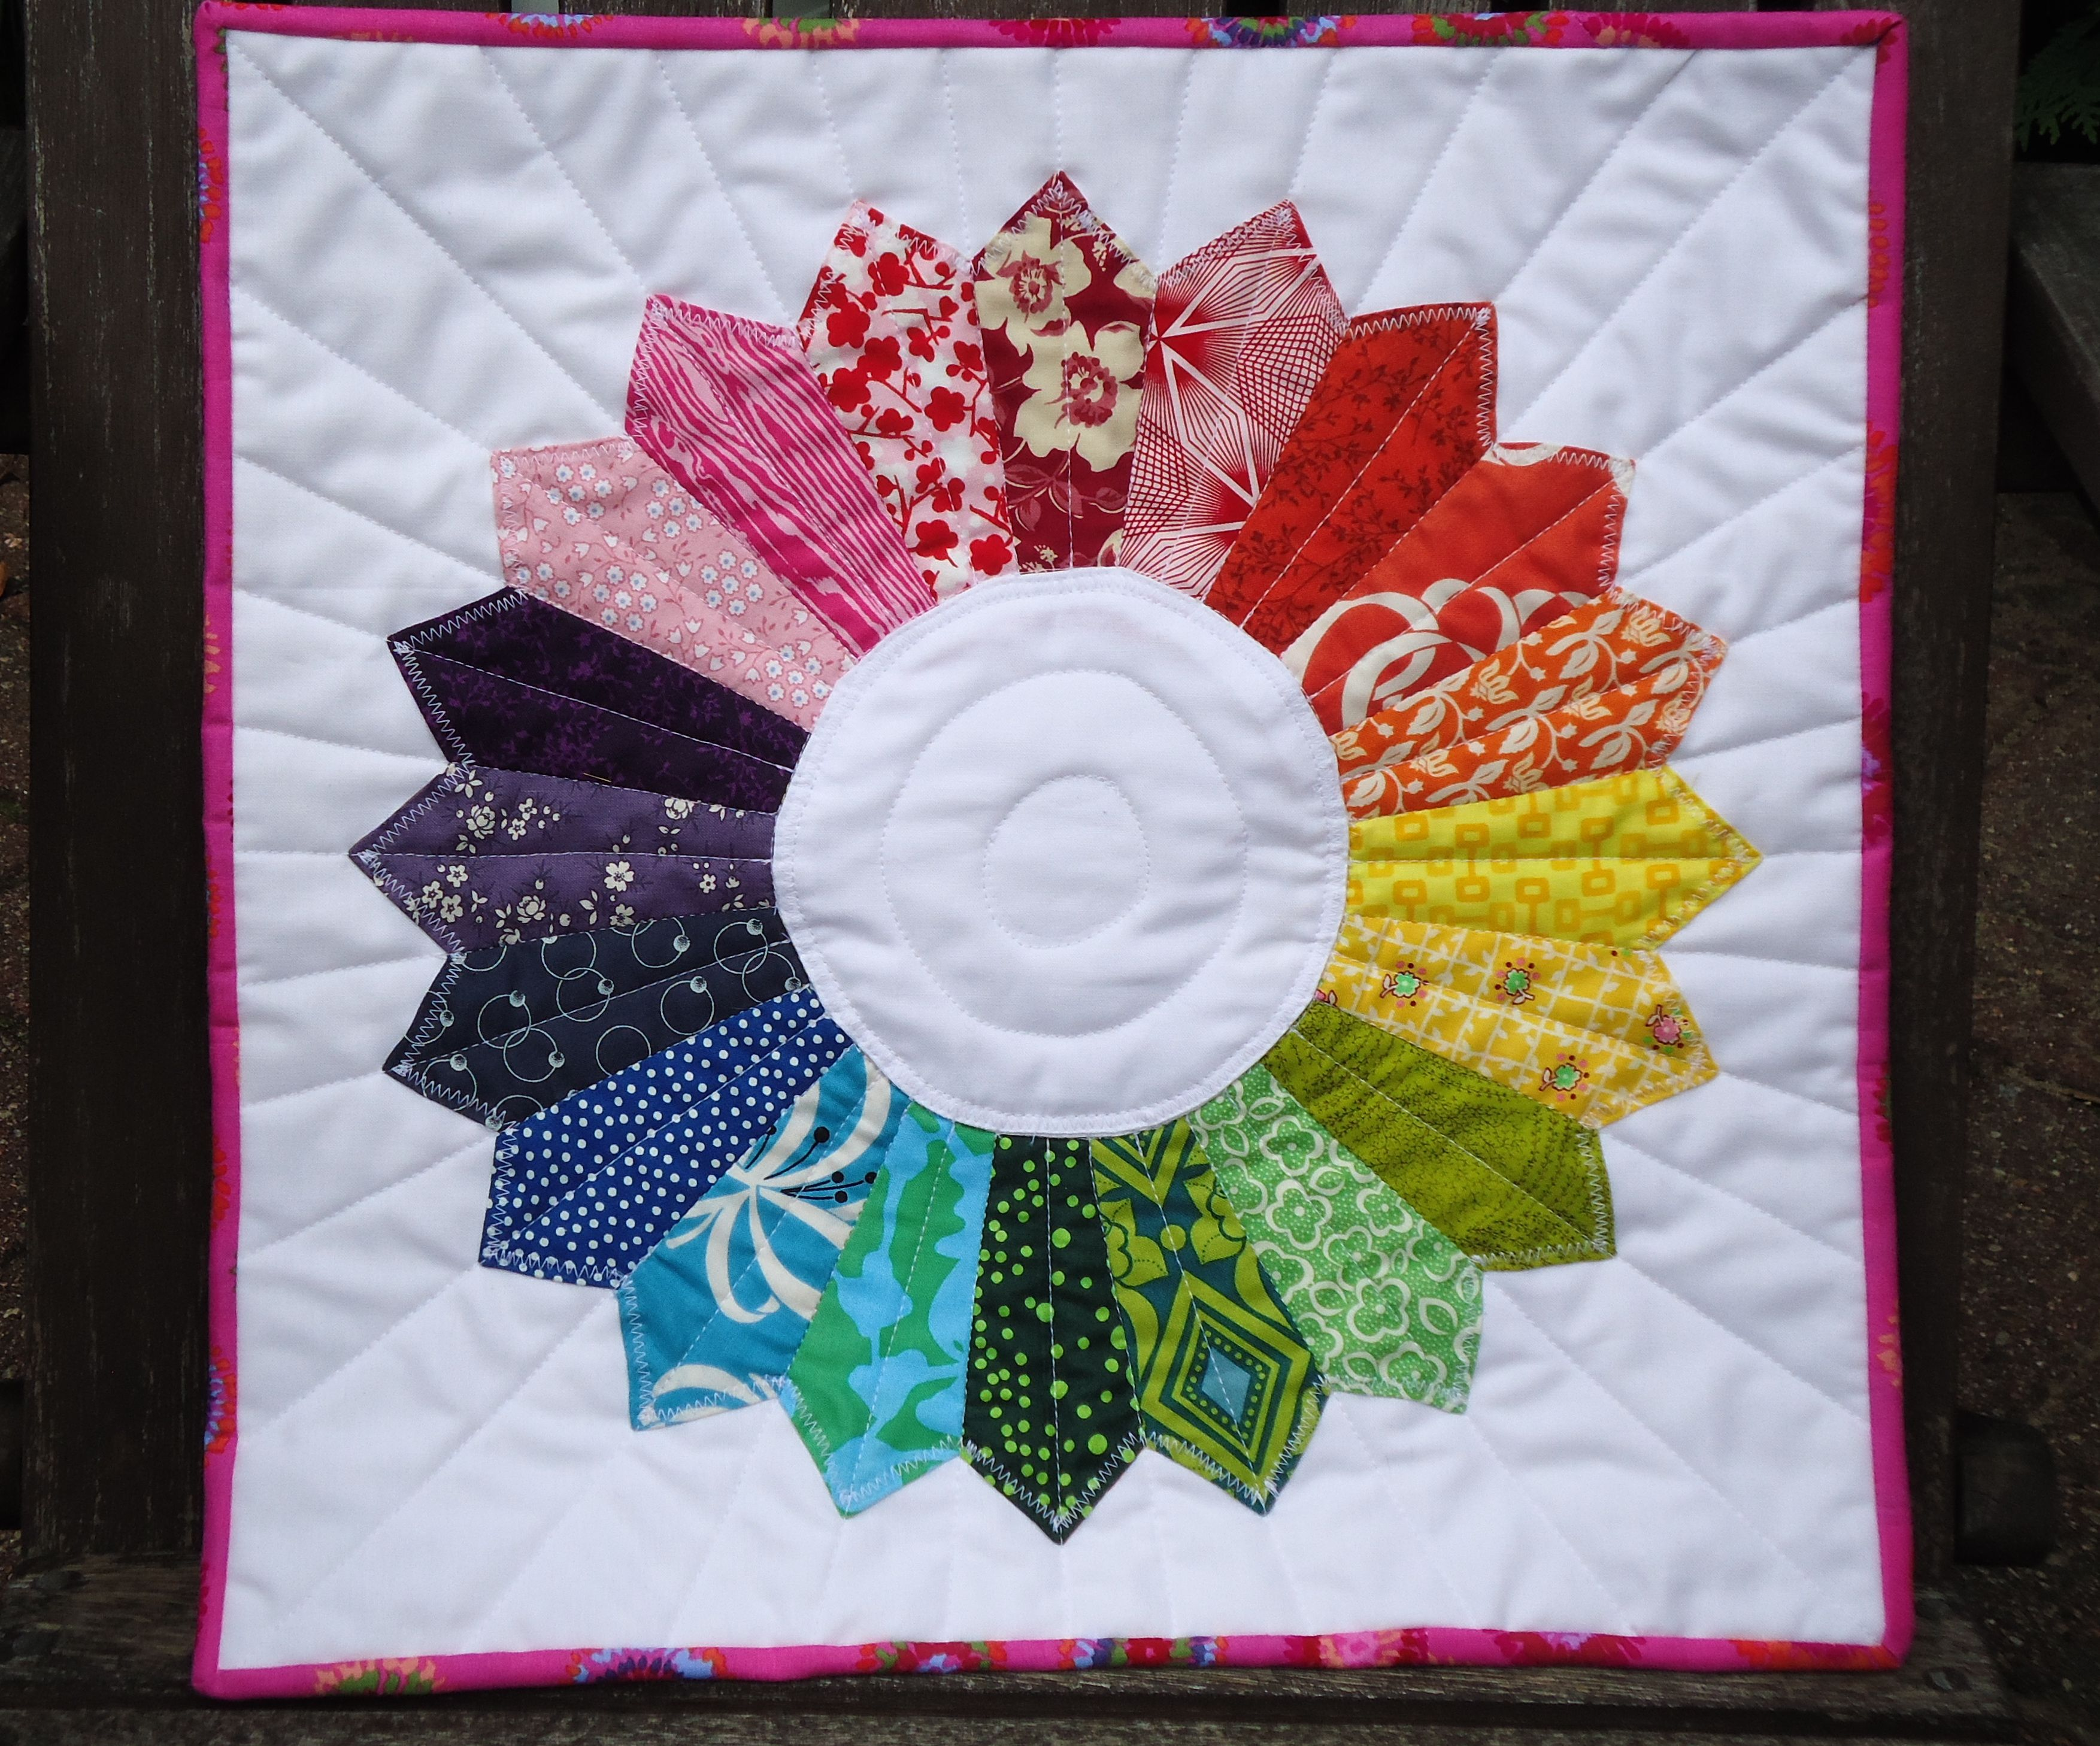 Pin By Susanmom C On Feelin Quil Y Pinterest Quilts Dresden